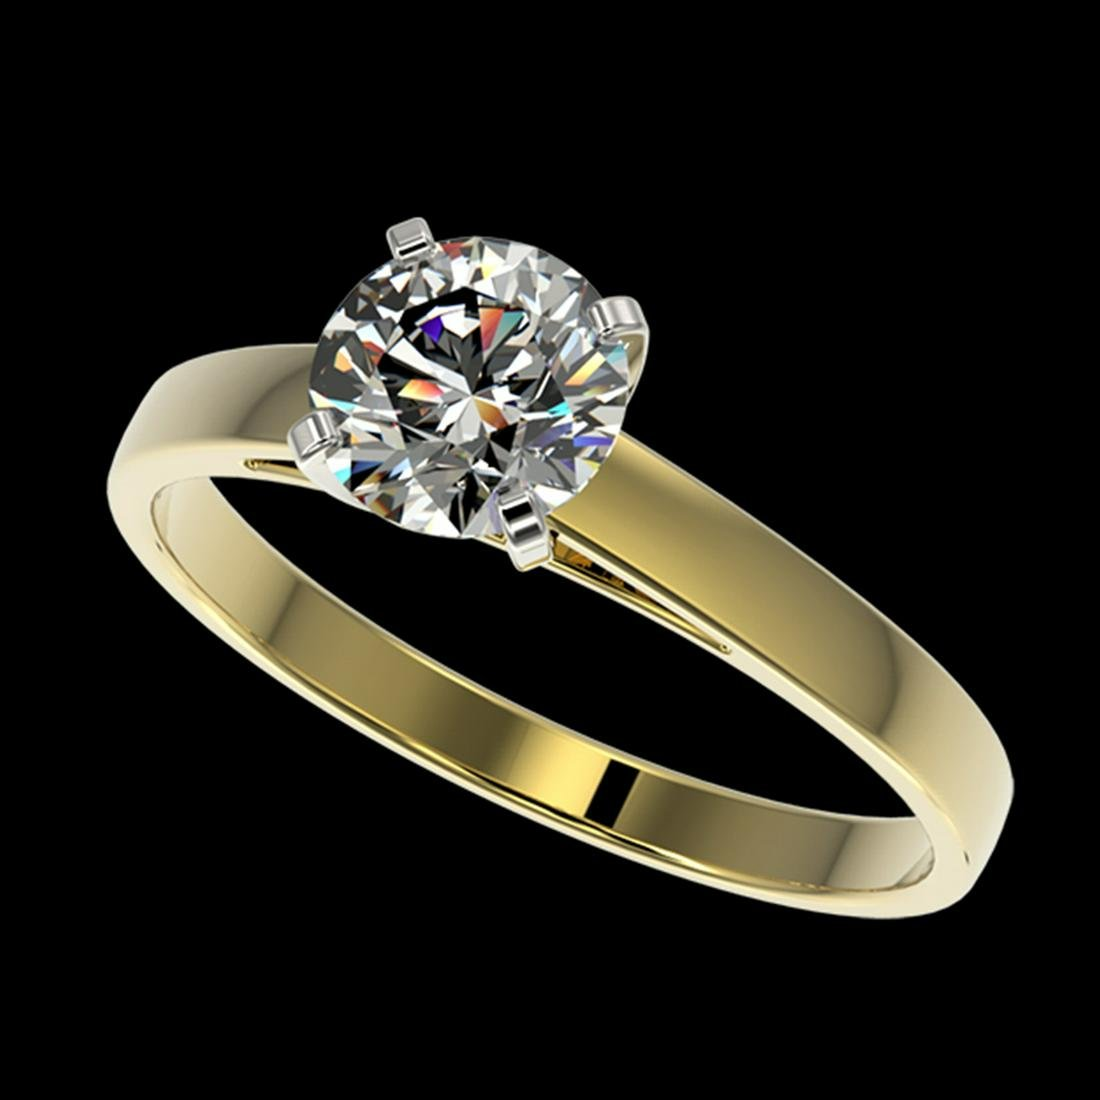 1.07 ctw H-SI/I Diamond Ring 10K Yellow Gold -